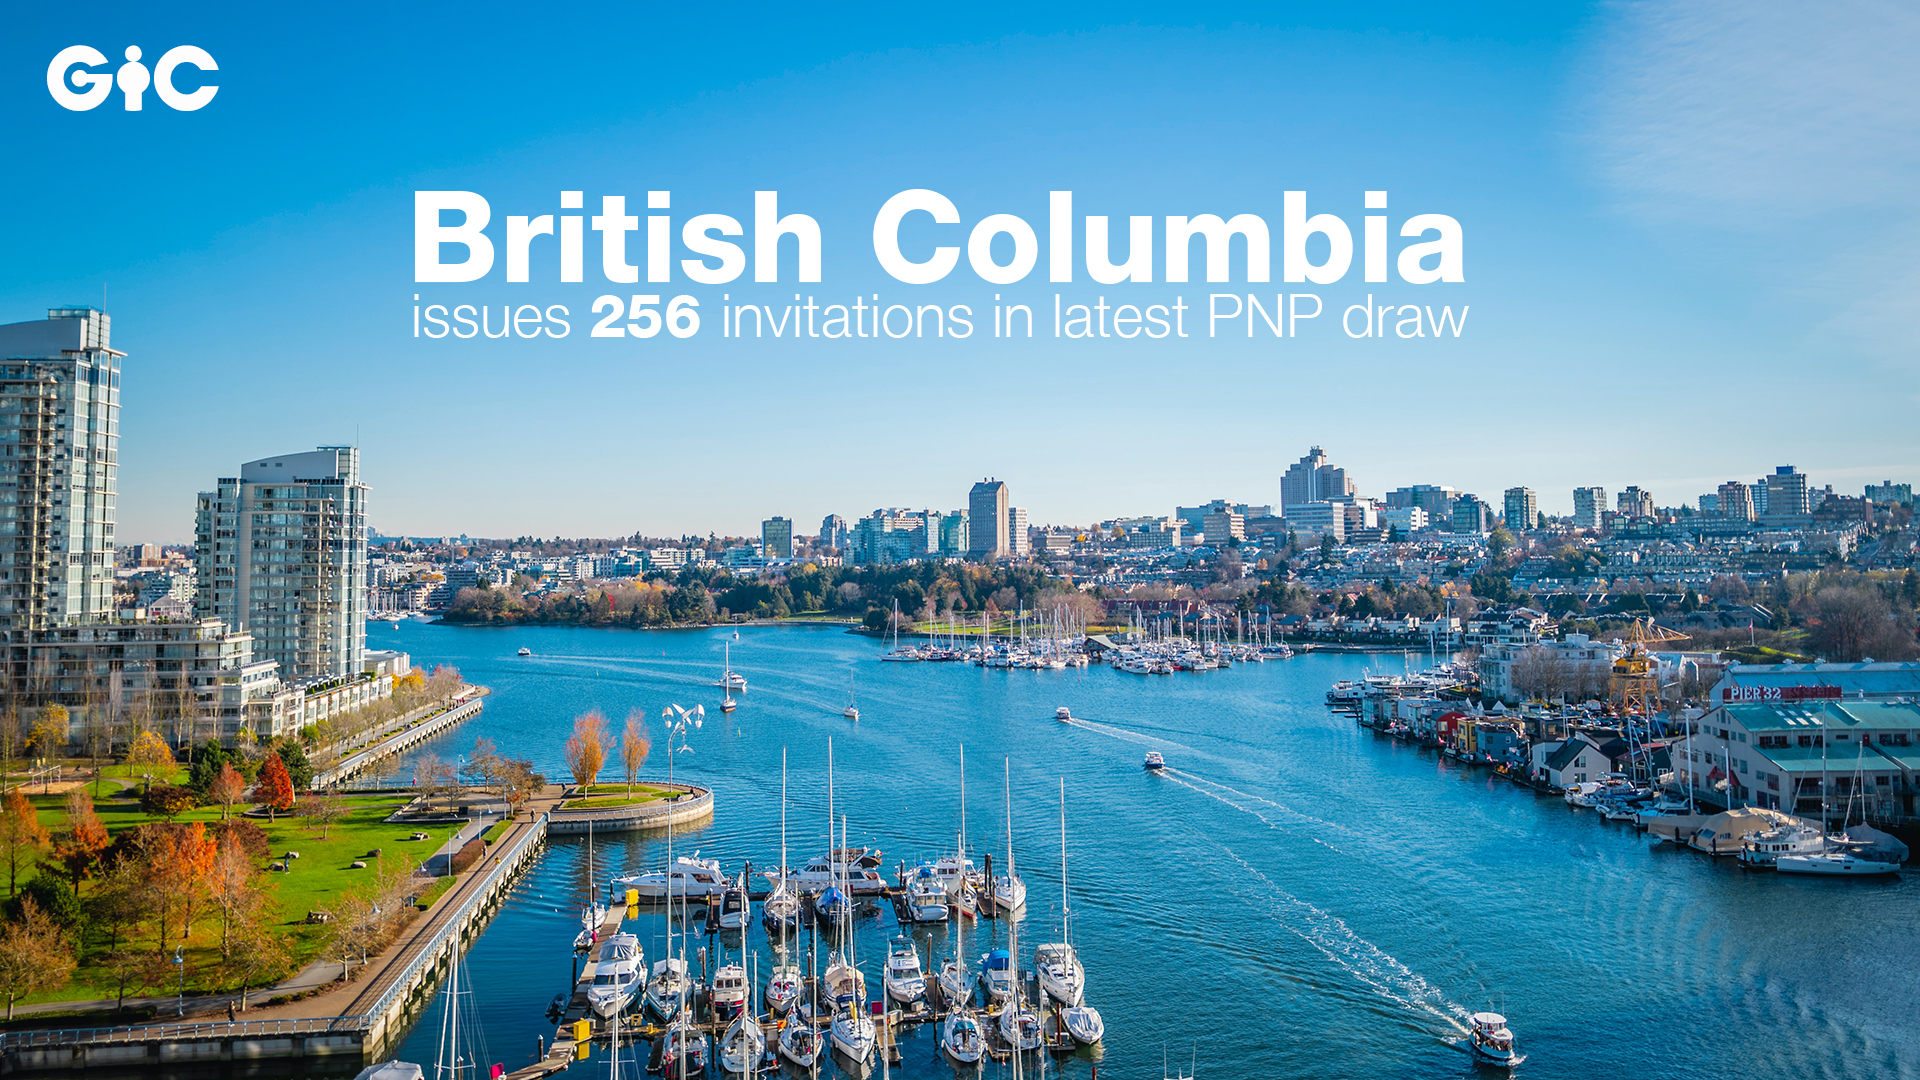 British Columbia issues 256 invitations in latest PNP draw